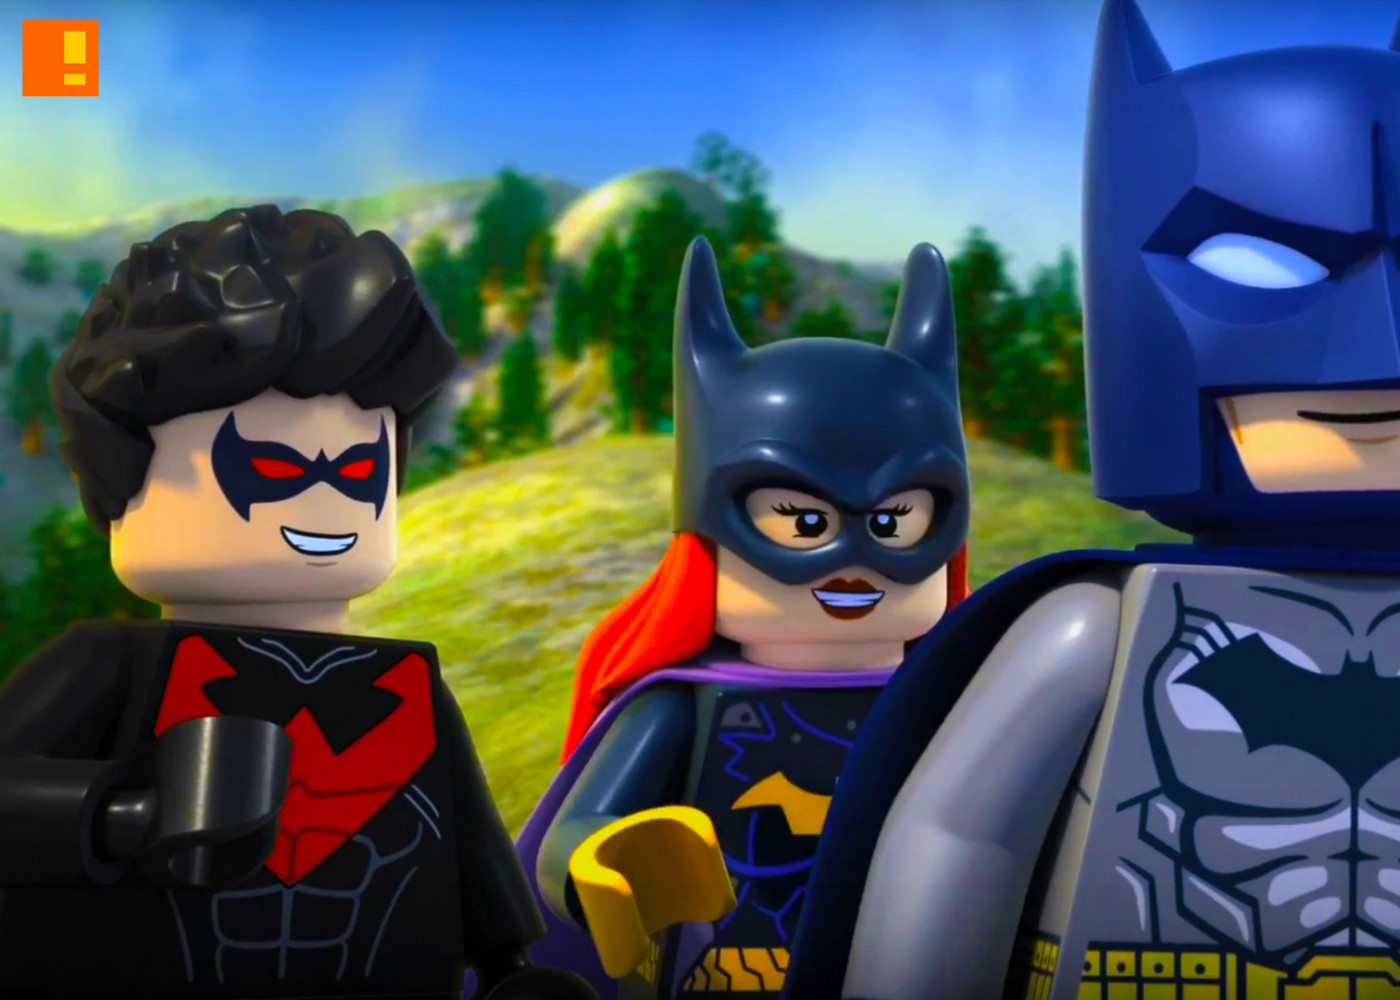 LEGO ,DC Comics, Super Heroes , Justice League, Gotham City Breakout, gotham, LEGO DC Comics Super Heroes - Justice League: Gotham City Breakout, batman, animation , warner animation, dc comics, batgirl, cyborg, superman, wonder woman, nightwing, robin, commissioner gordon, poison ivy, joker, the joker, arkham asylum, trailer,